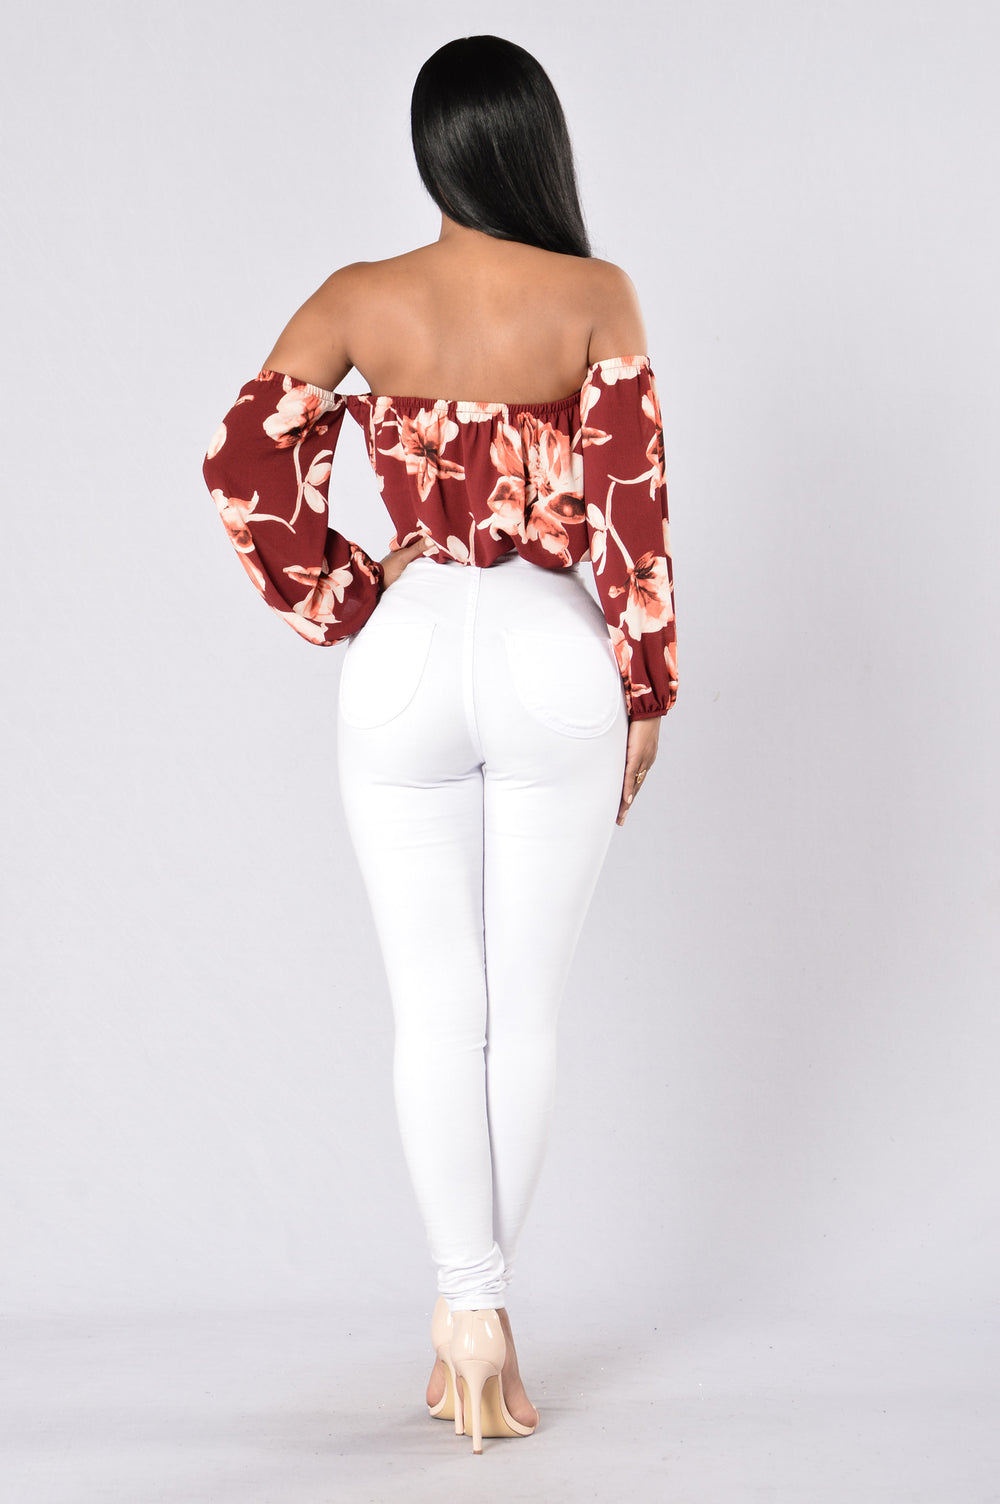 Love Birds Bodysuit - Burgundy